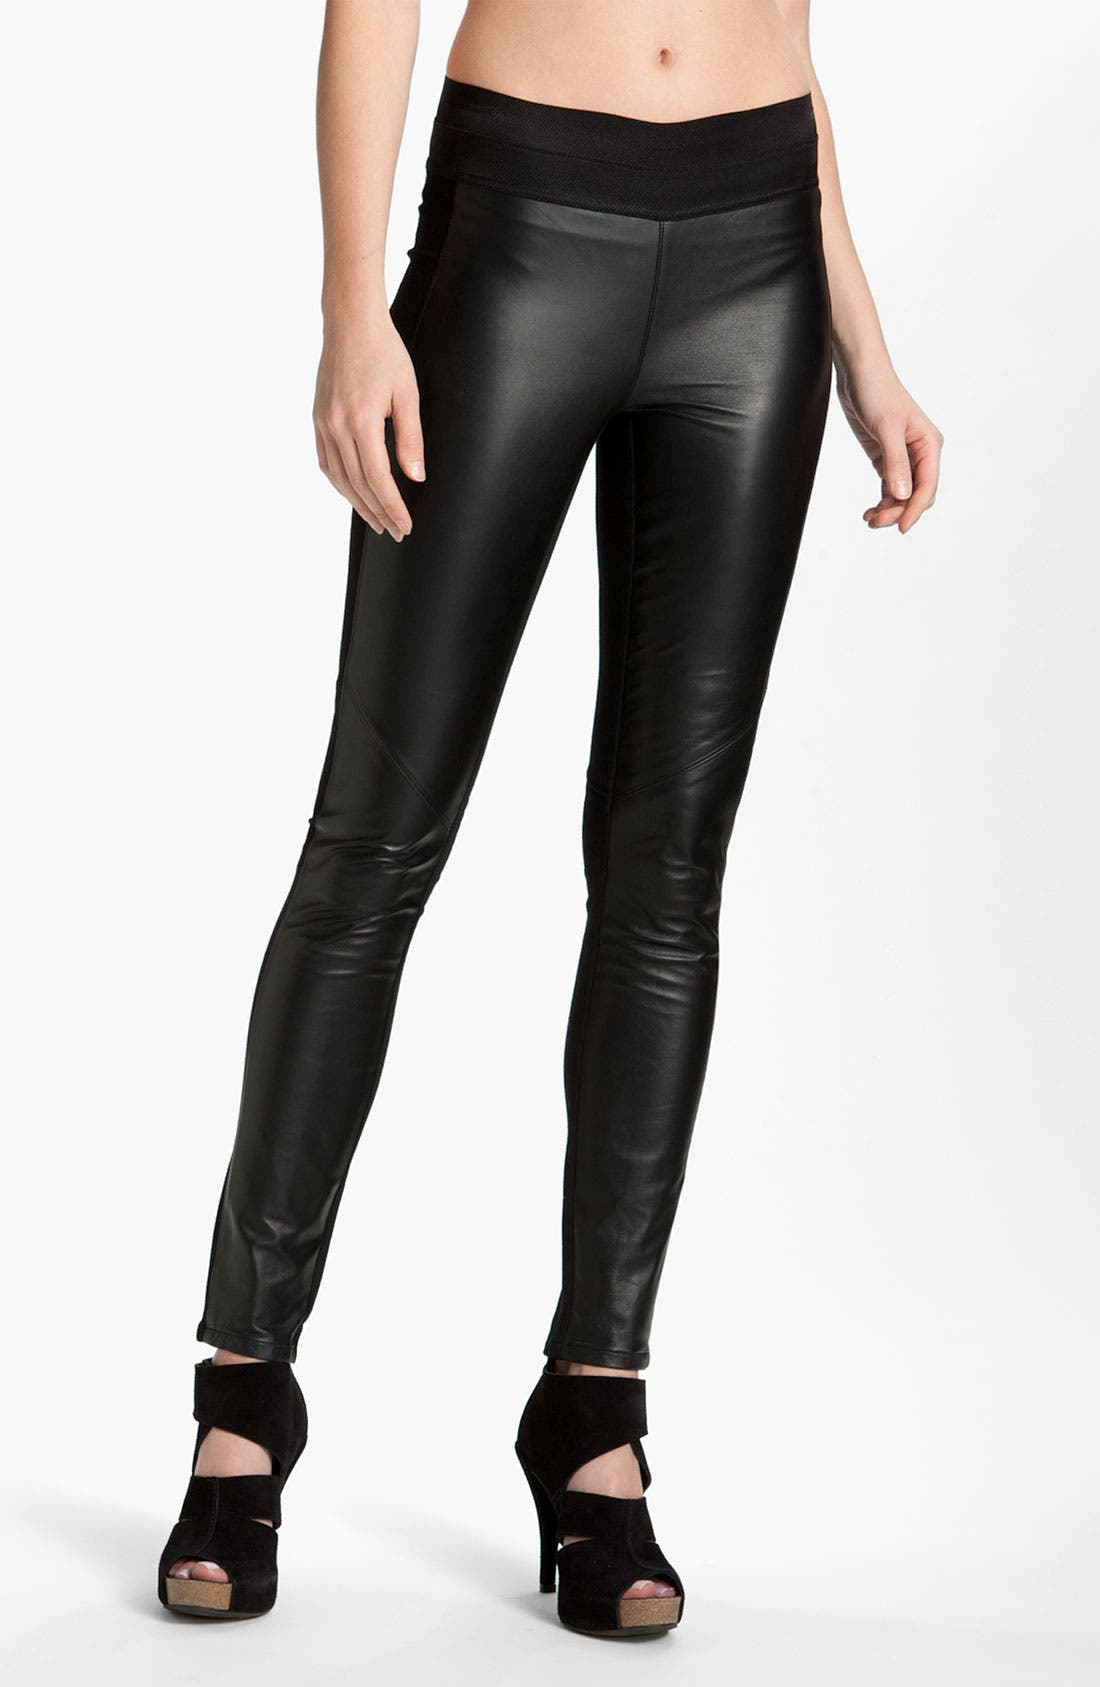 Main Image - Paige Black Label 'Paloma' Leather Panel Leggings